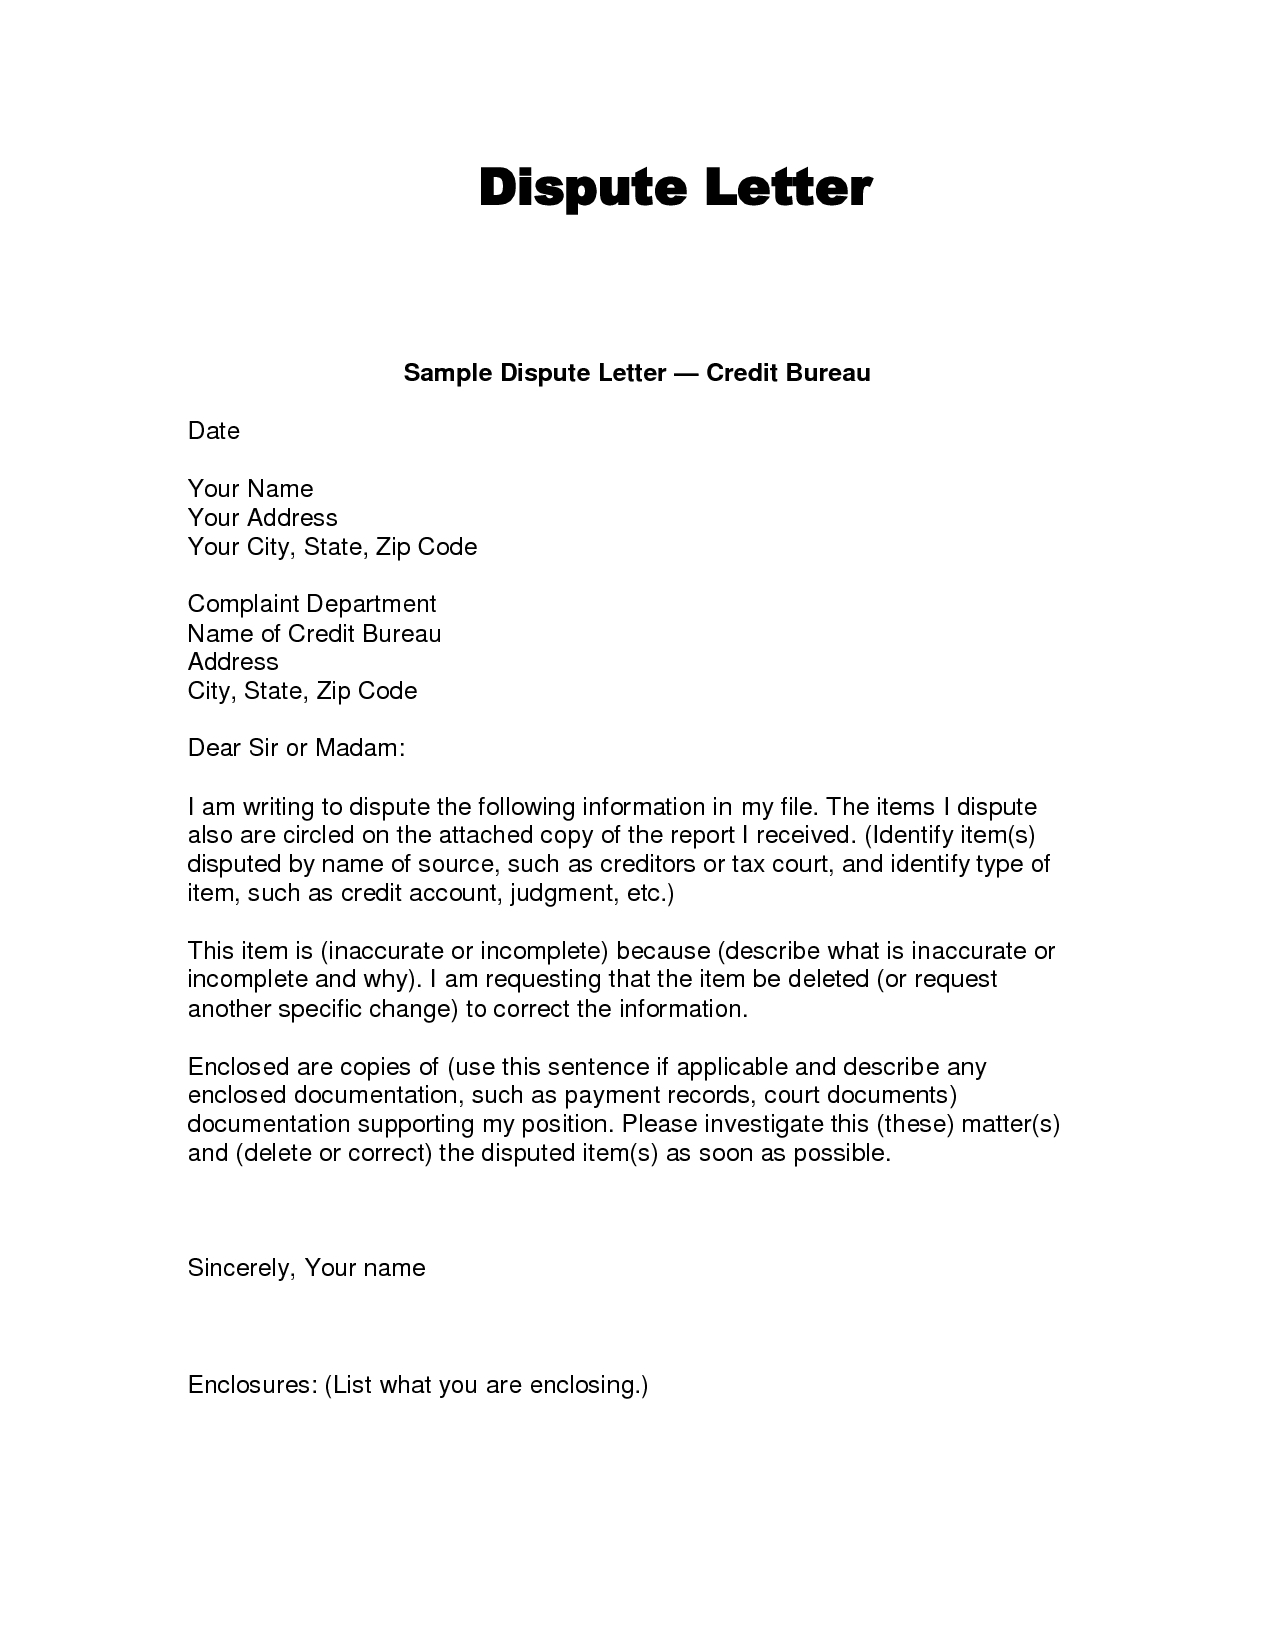 Credit Agency Dispute Letter Template - Credit Dispute Letter Templates Acurnamedia